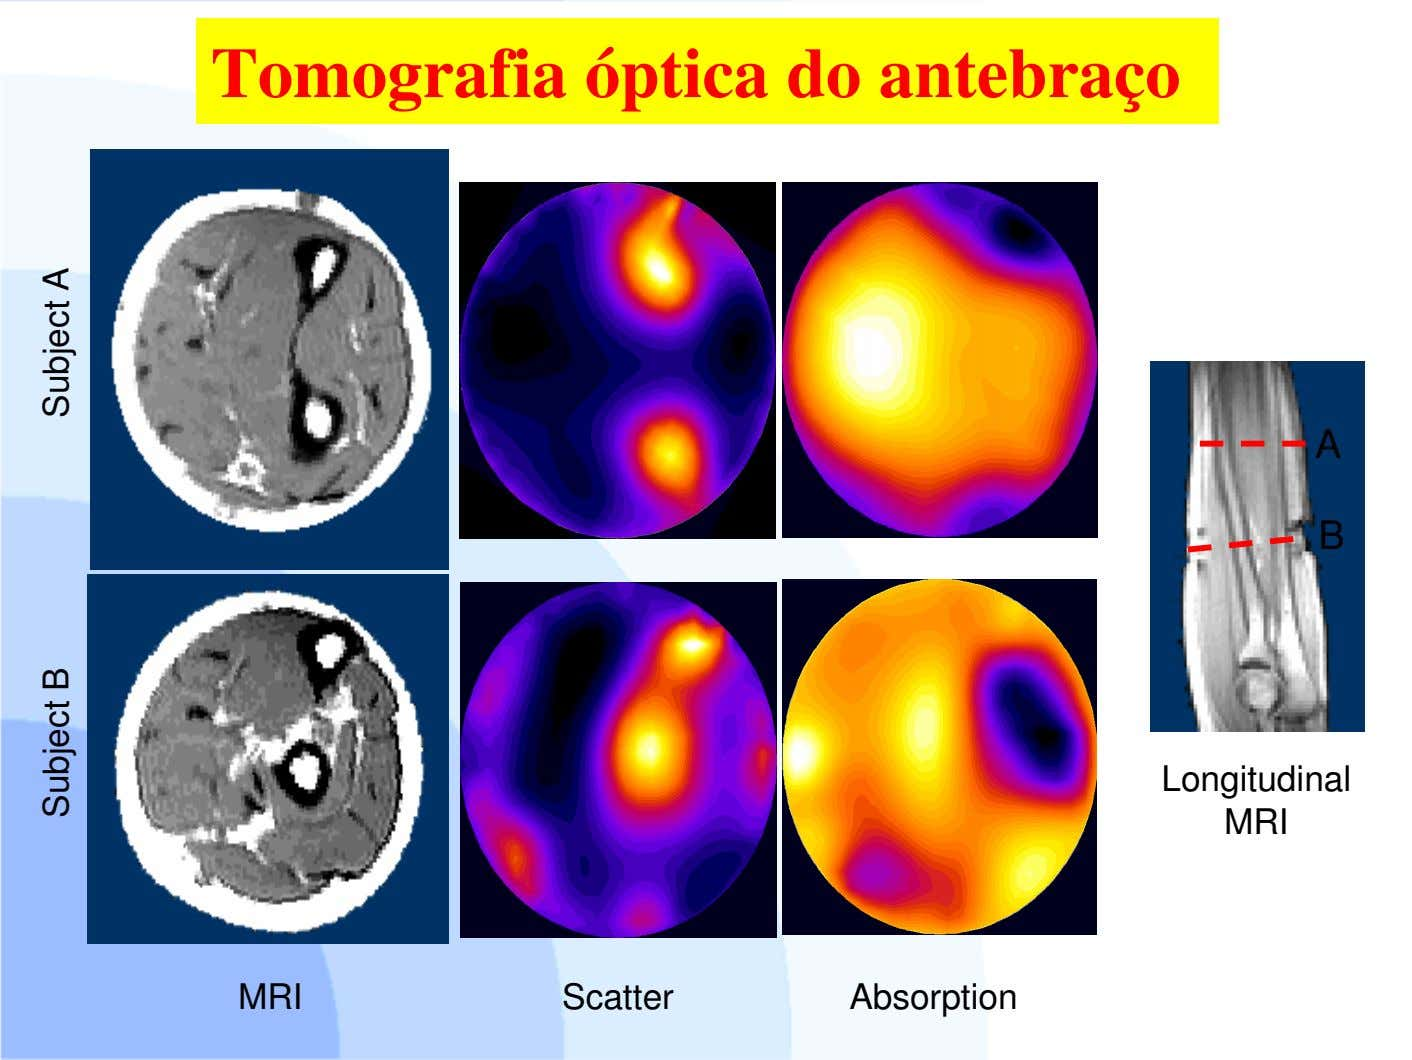 Tomografia óptica do antebraço A B Longitudinal MRI MRI Scatter Absorption Subject ASubject B